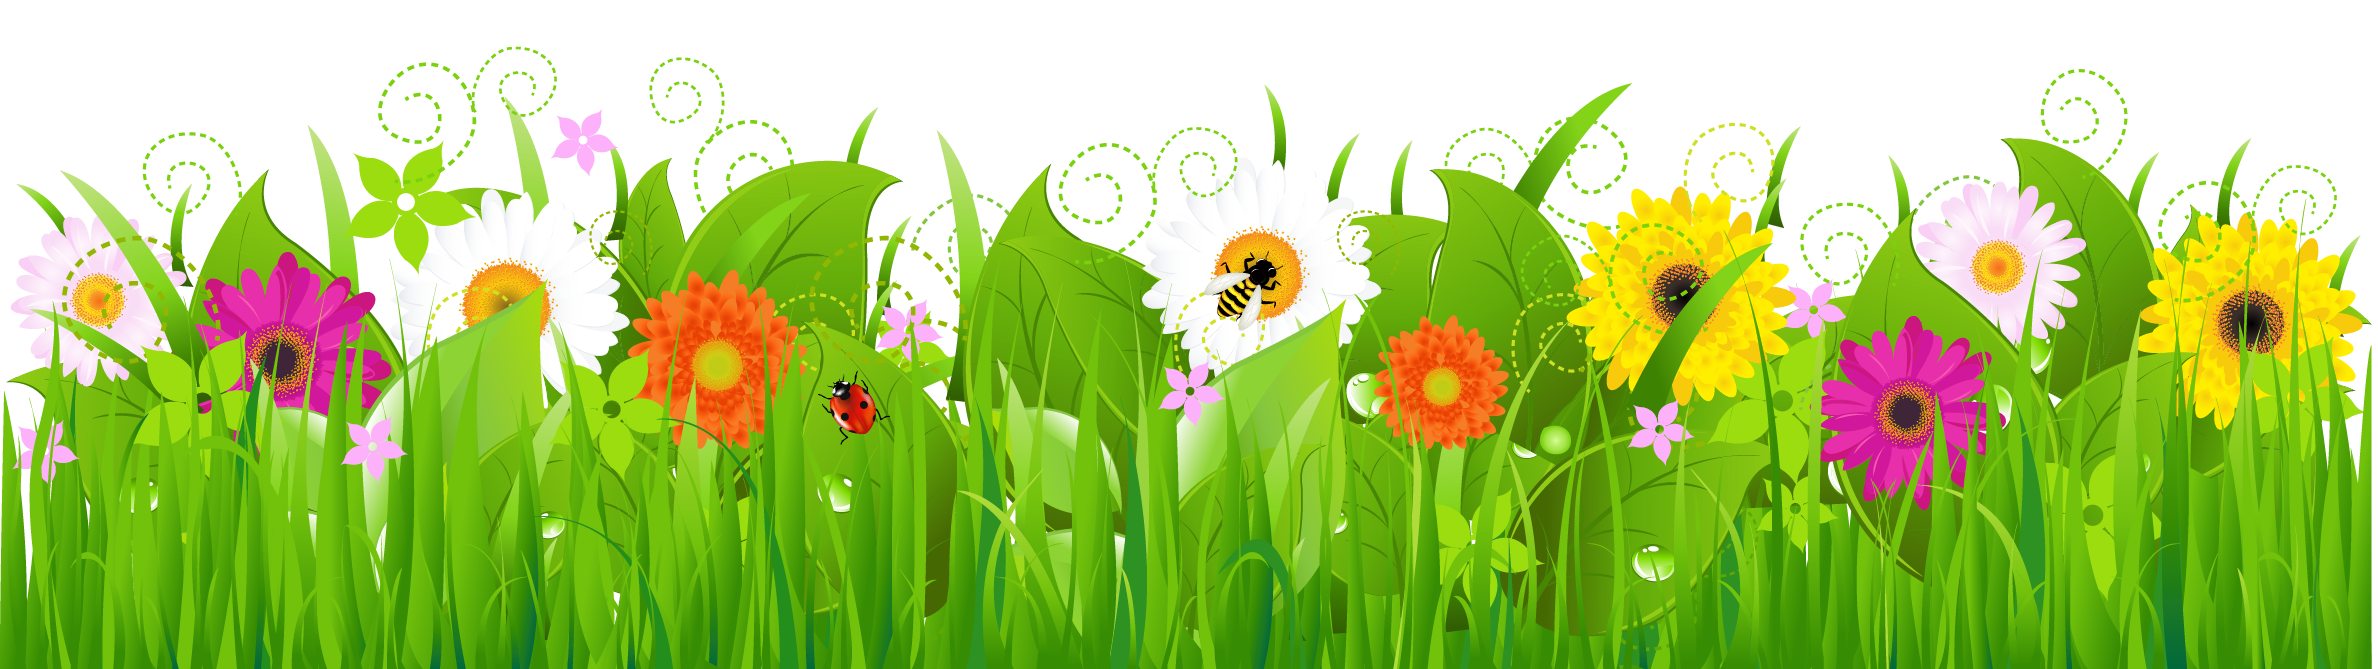 Bee with flower clipart vector Clip art grass clipart cliparts for you clipartix 2 | Diversos ... vector